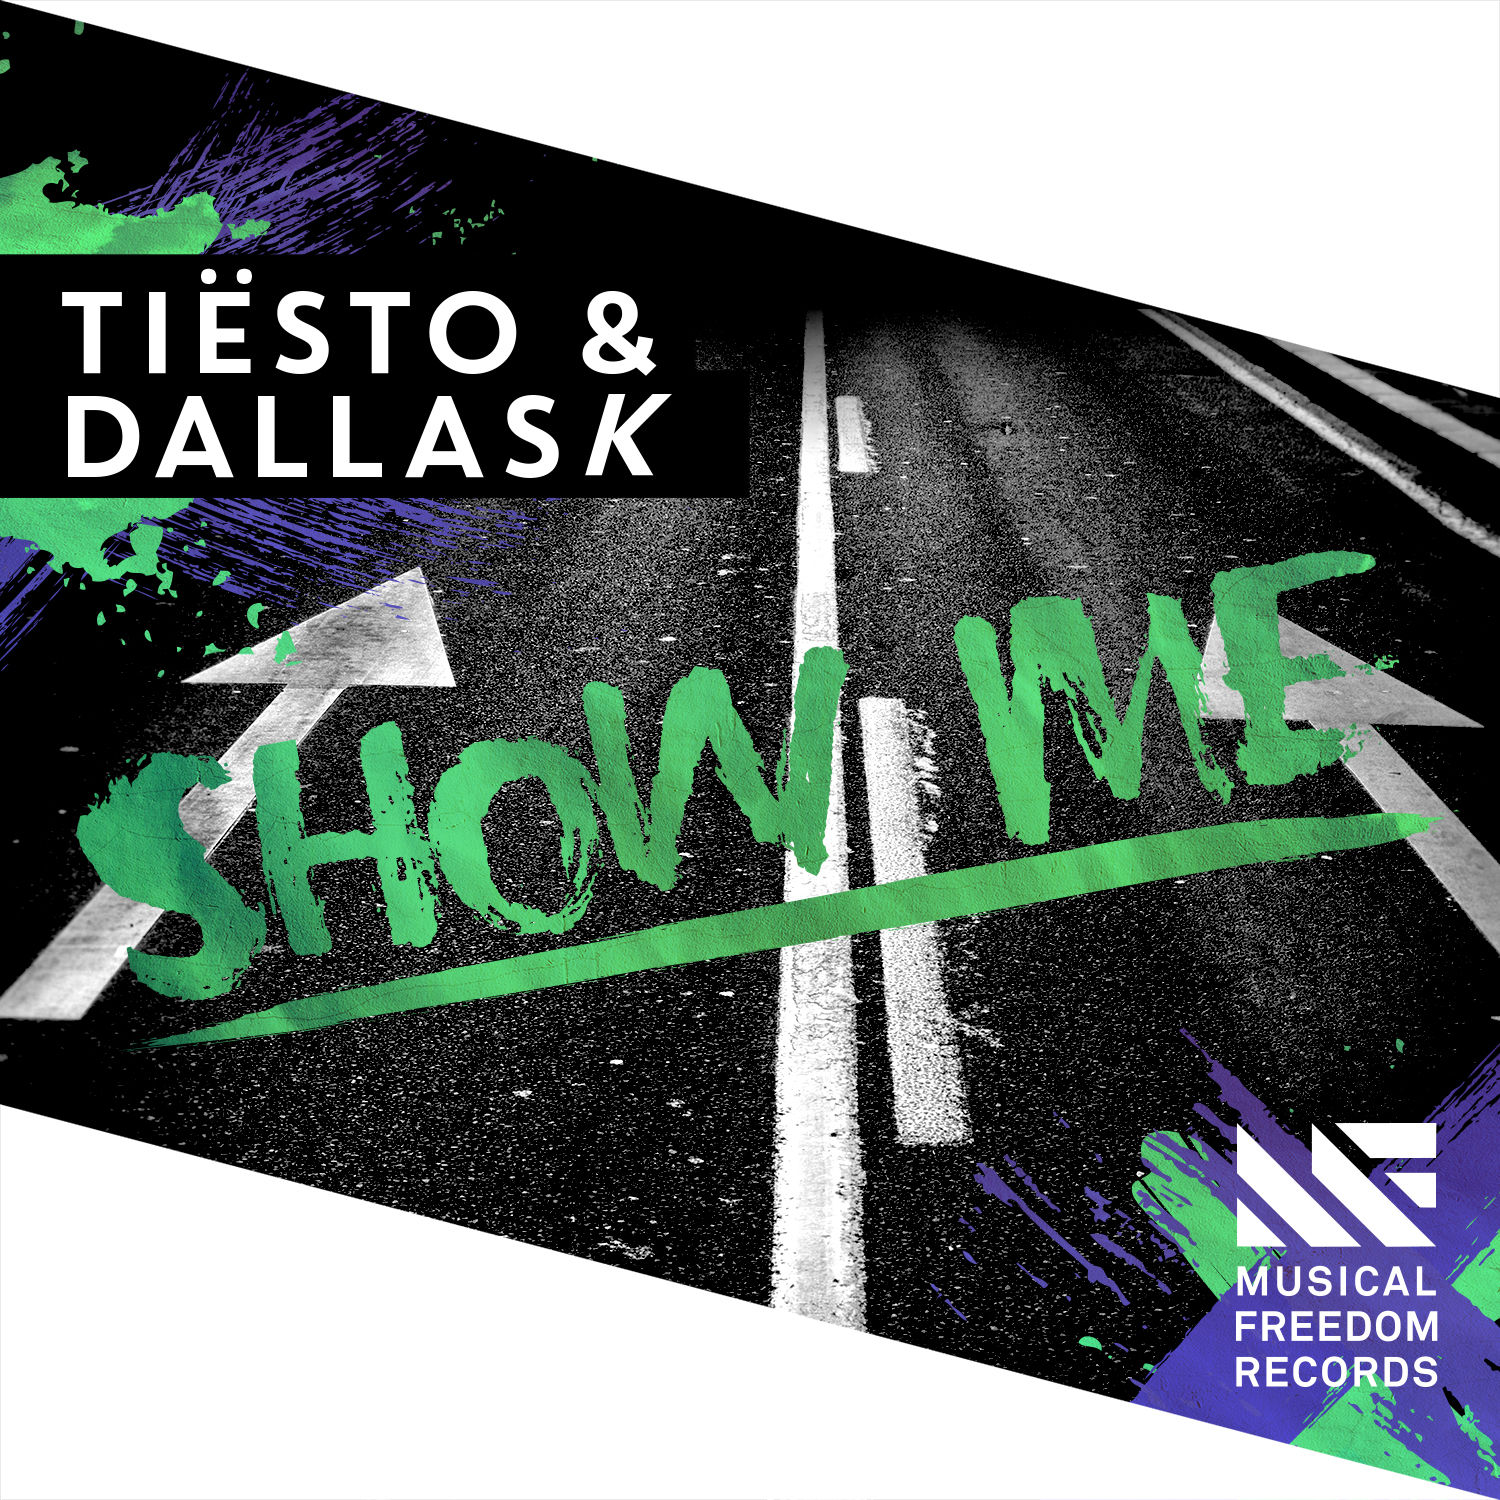 tiesto dallask show me musical freedom artwork Ti sto Blog